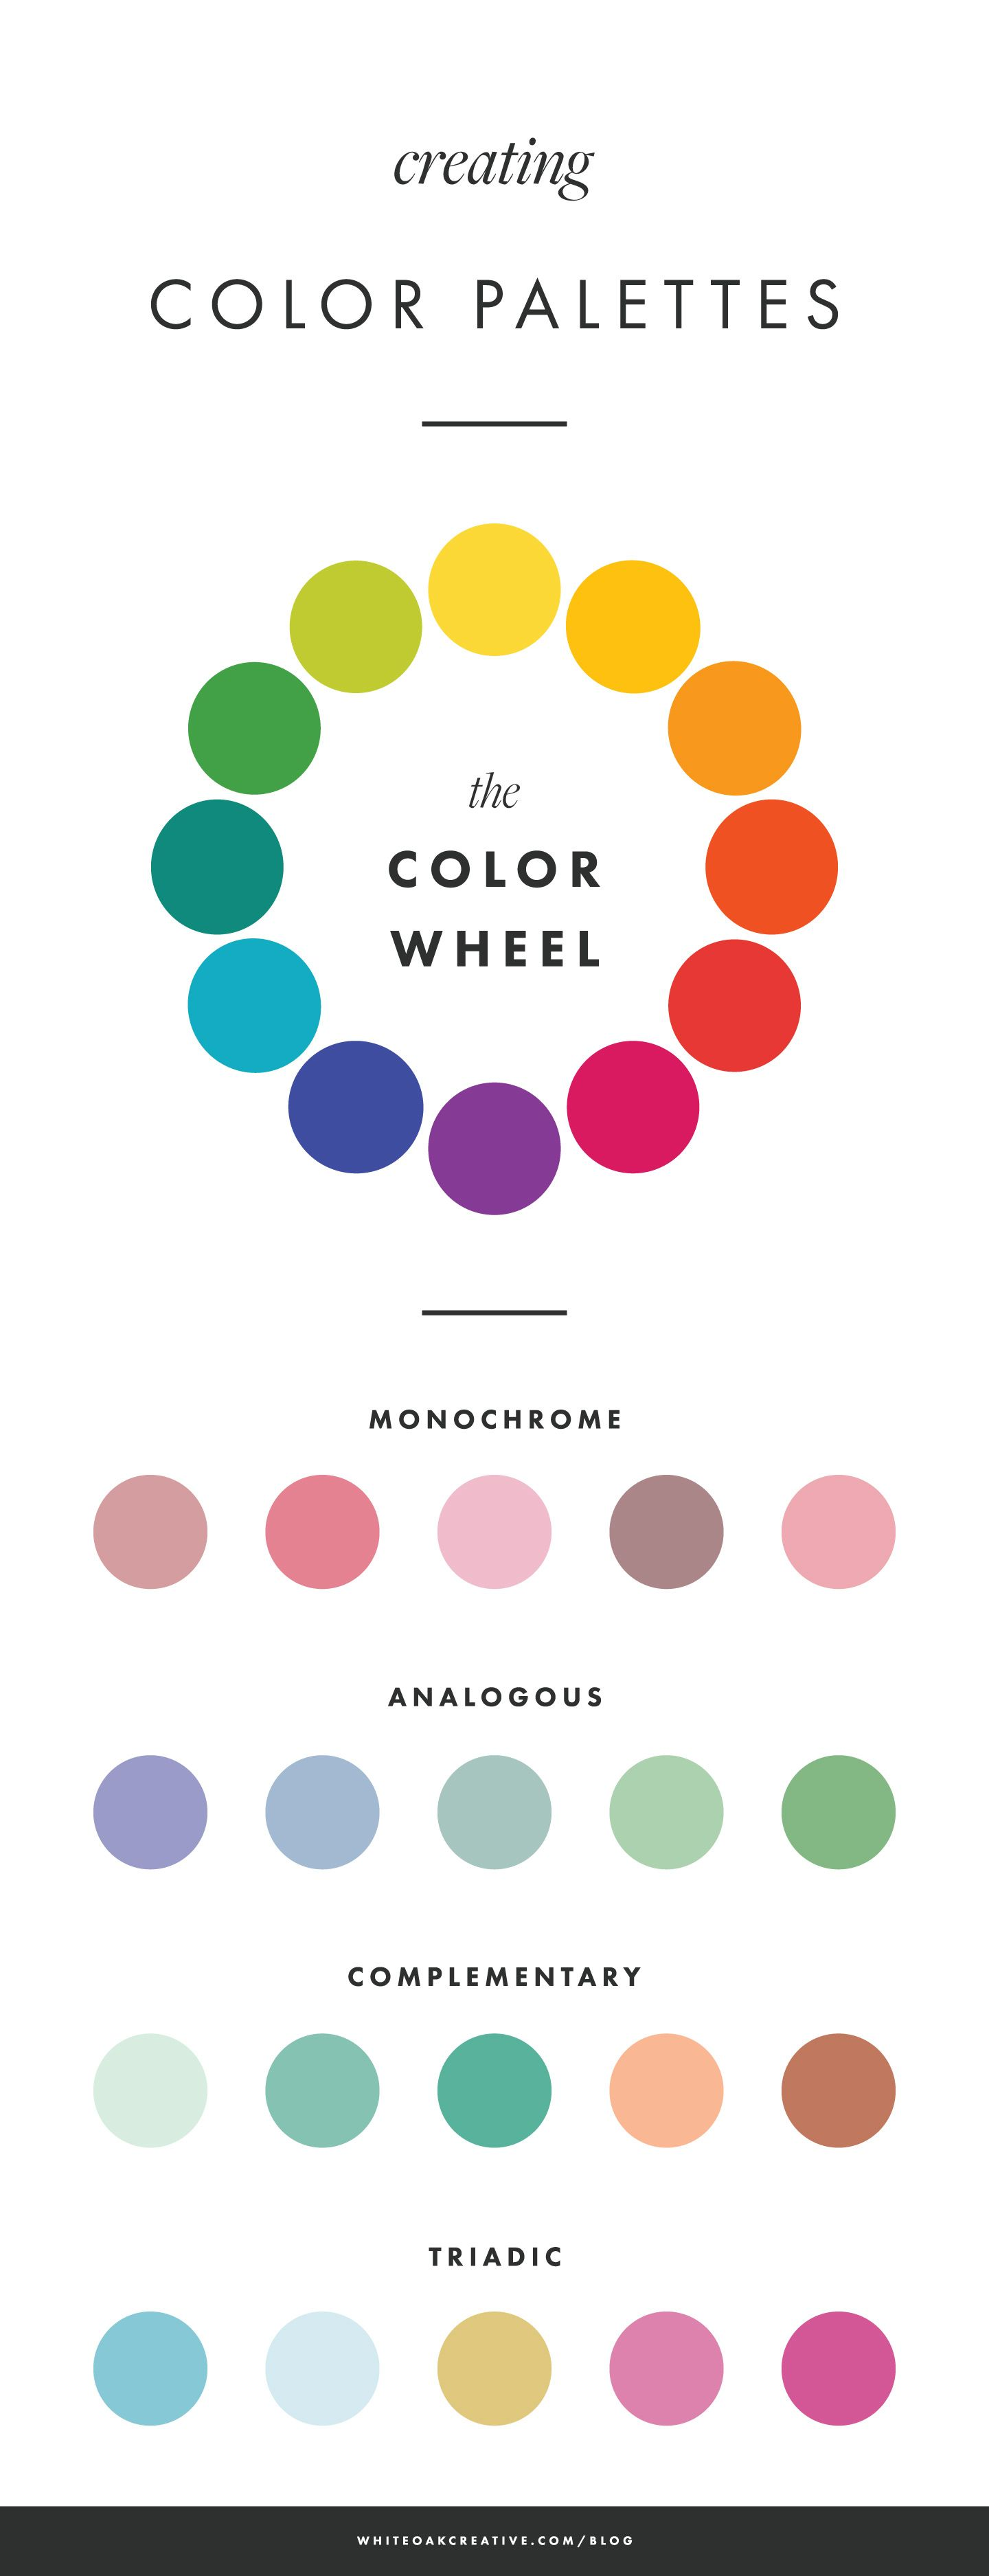 How To Select The Correct Color Palette For Your Brand